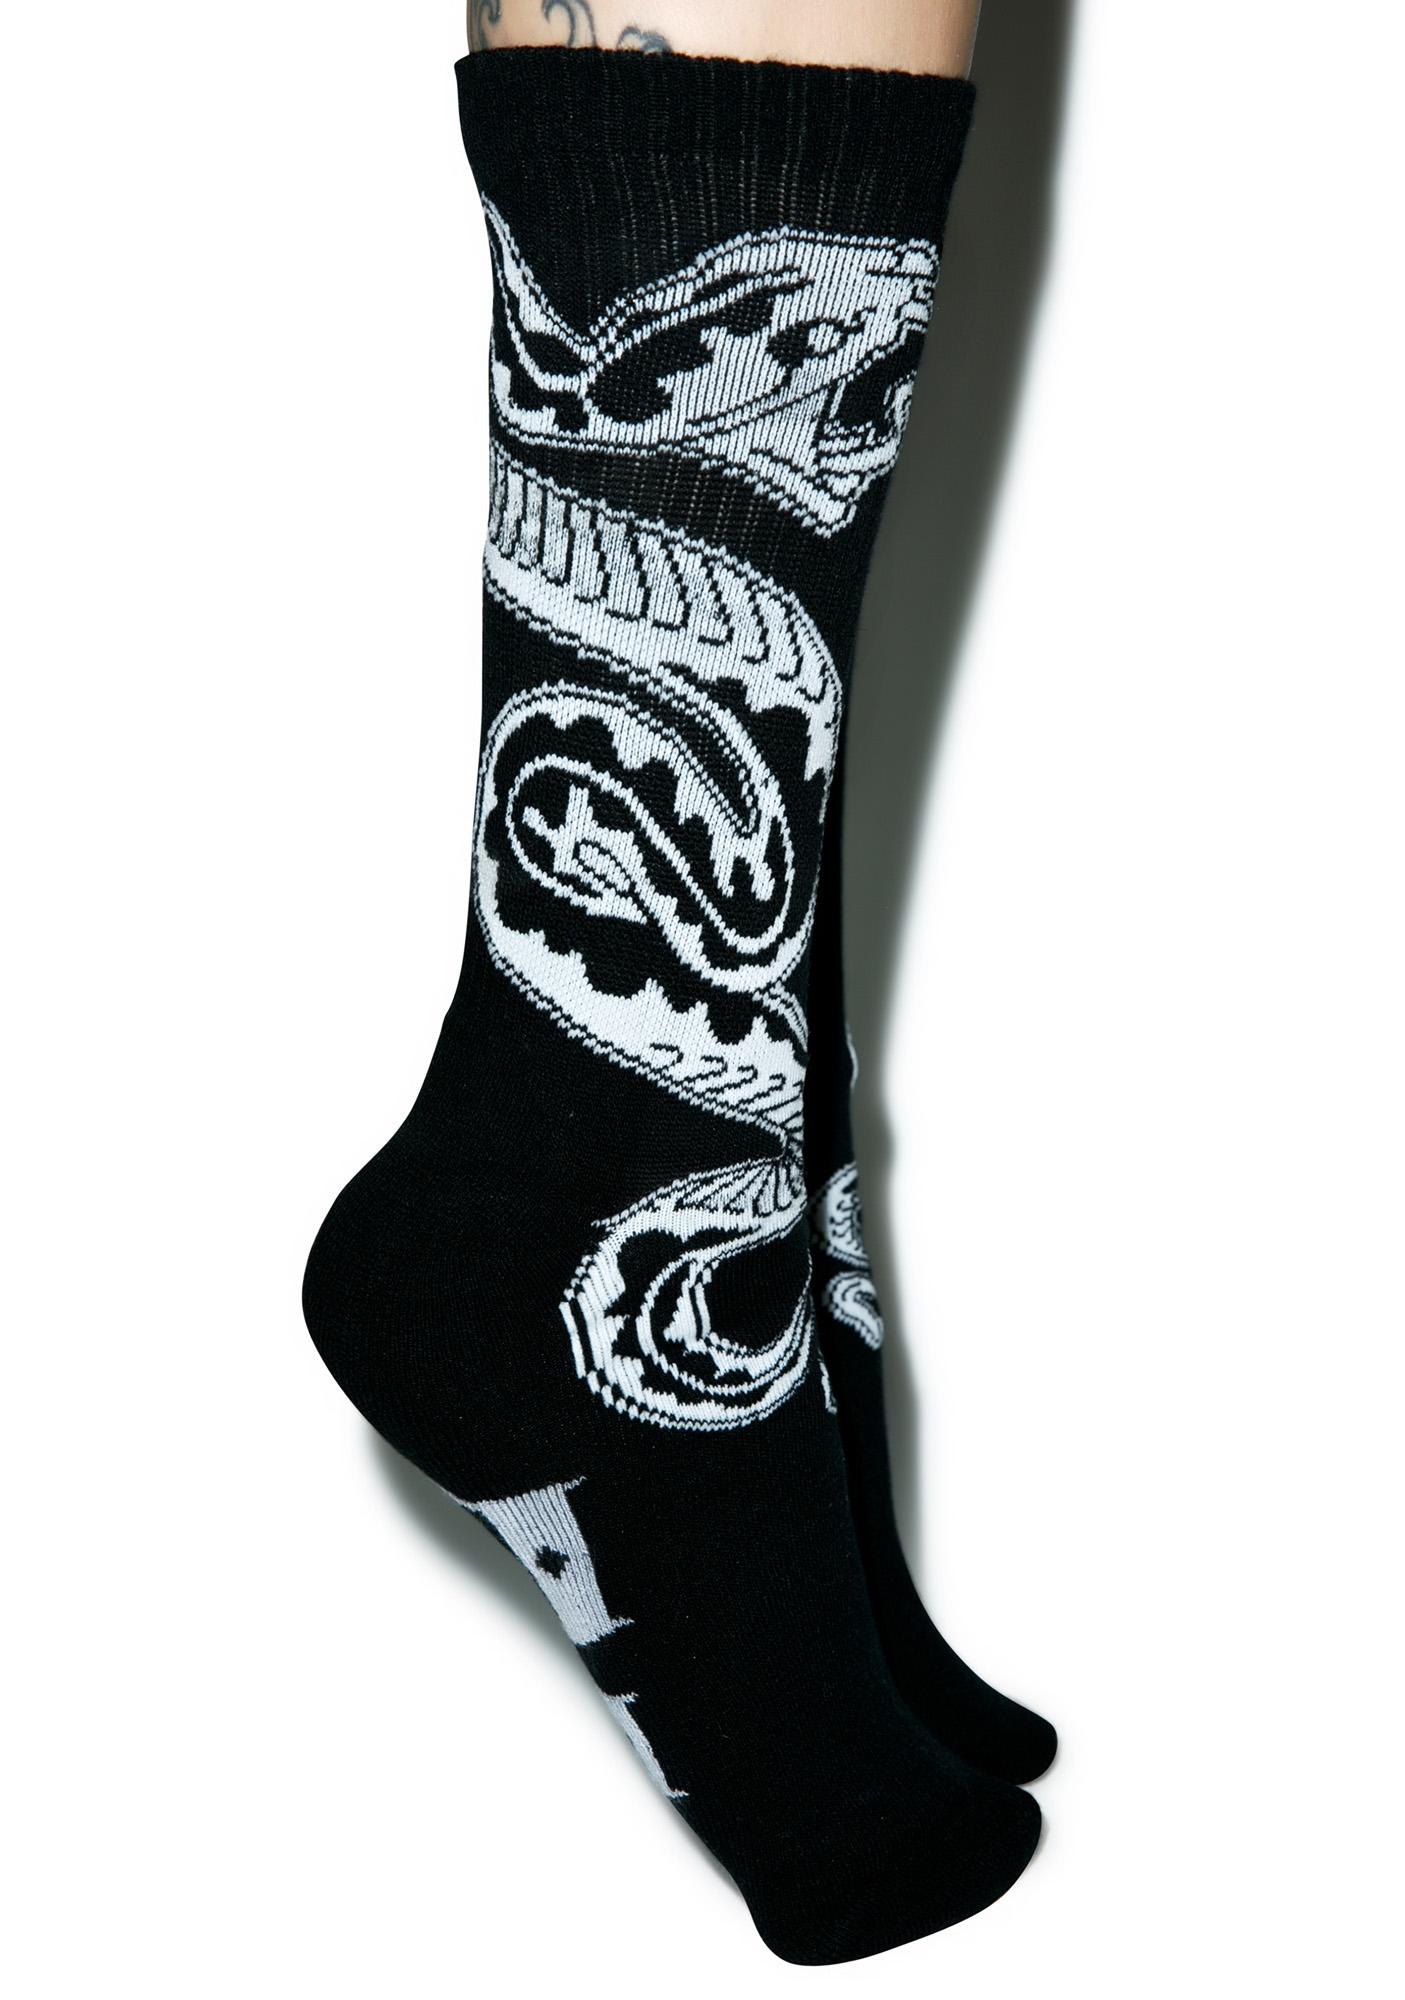 Rebel8 Run To The Hills Socks